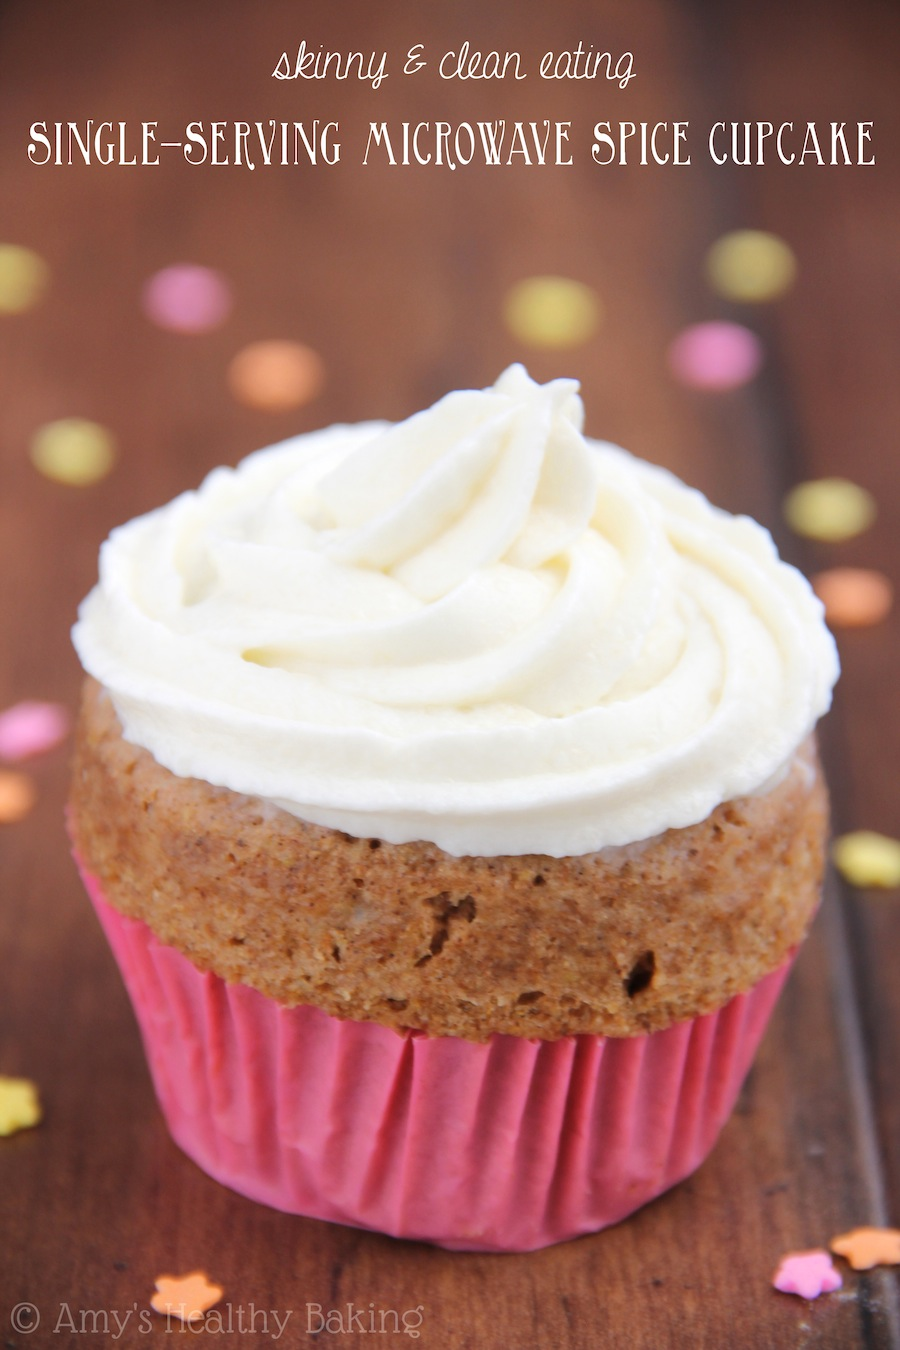 Skinny Single-Serving Microwave Spice Cupcake